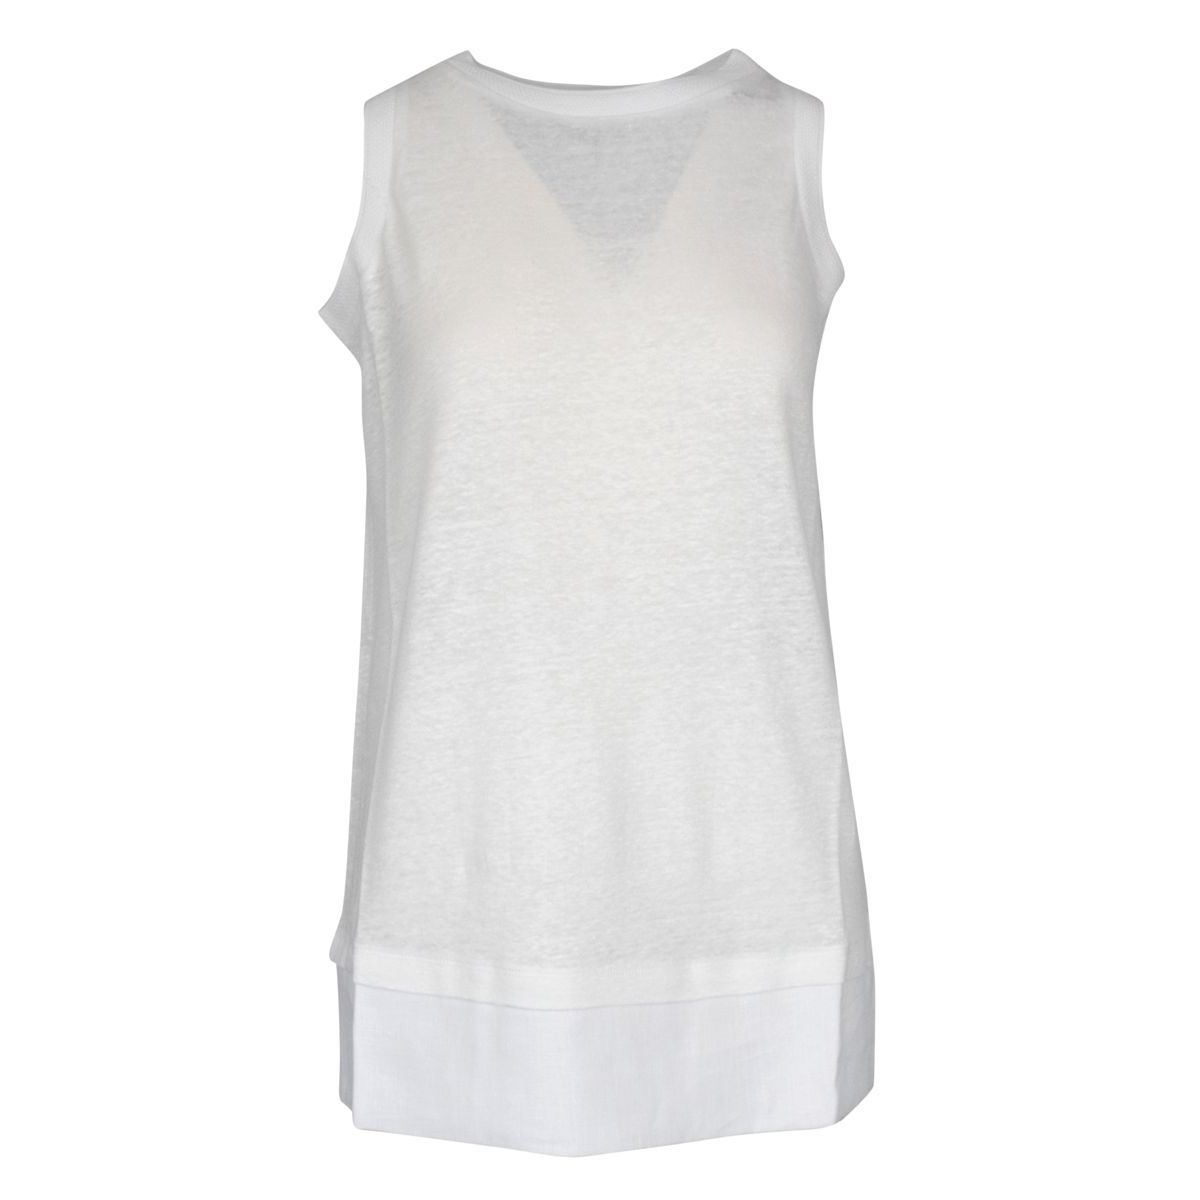 Solid color sleeveless crew neck sweater White Alpha Studio